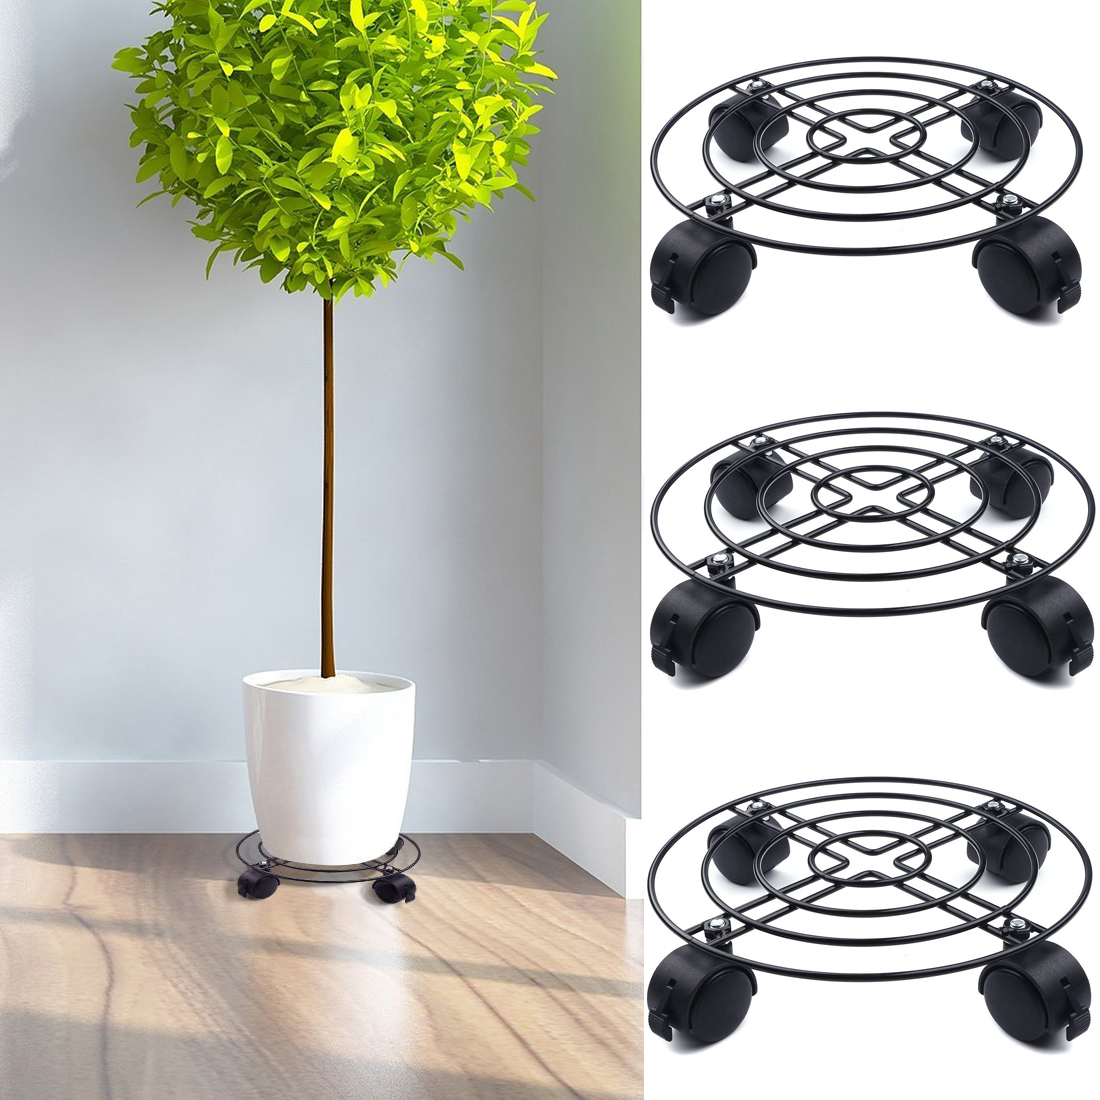 Garden & Outdoors Chrome-Plated Garden Pot Stand with Wheels